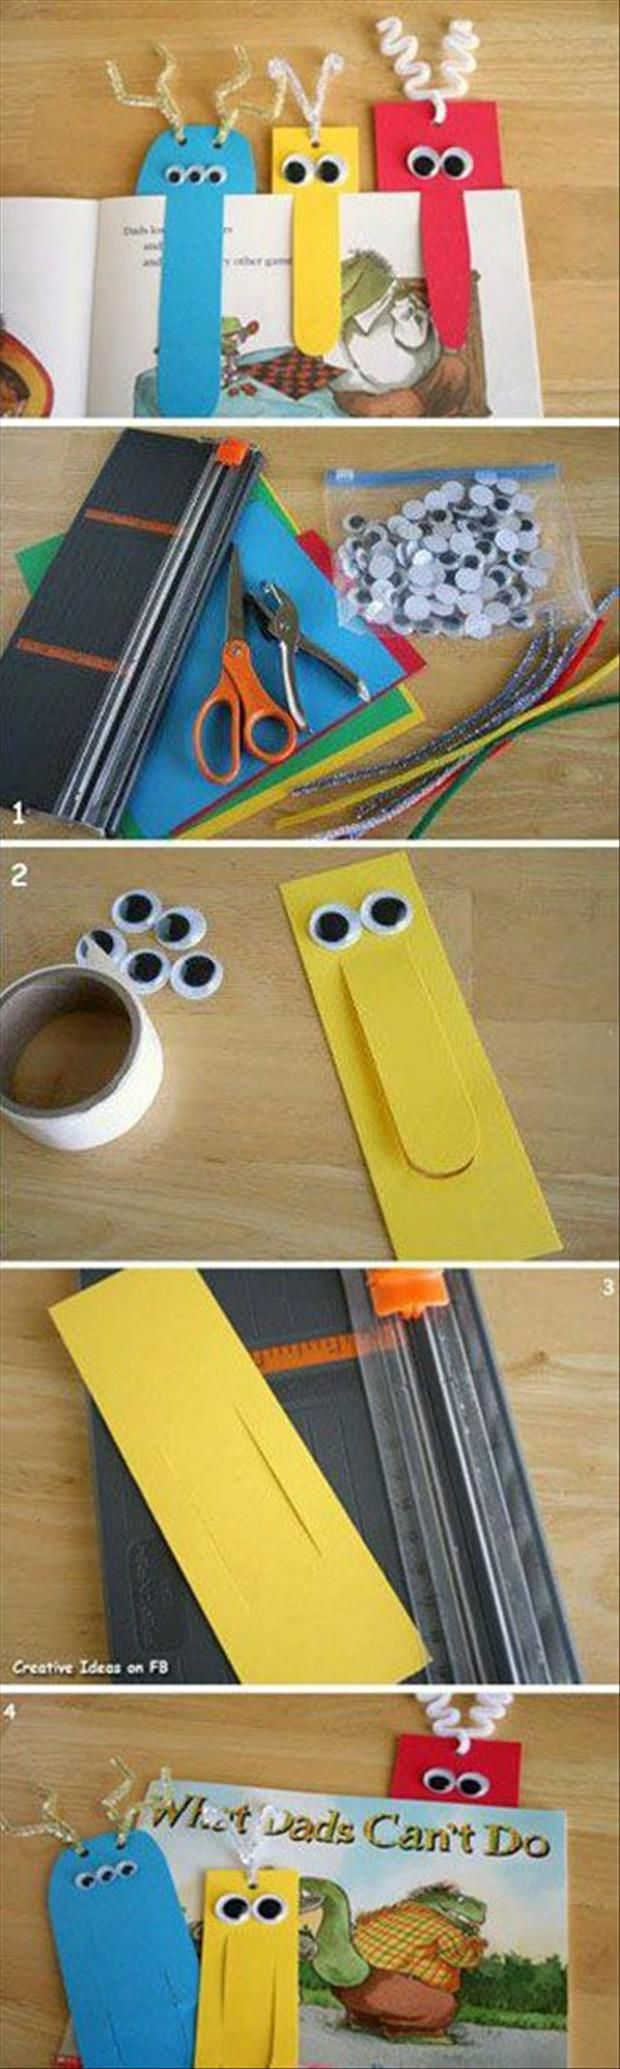 Do it yourself craft ideas of the week 52 pics pinterest craft do it yourself craft ideas of the week 52 pics solutioingenieria Image collections